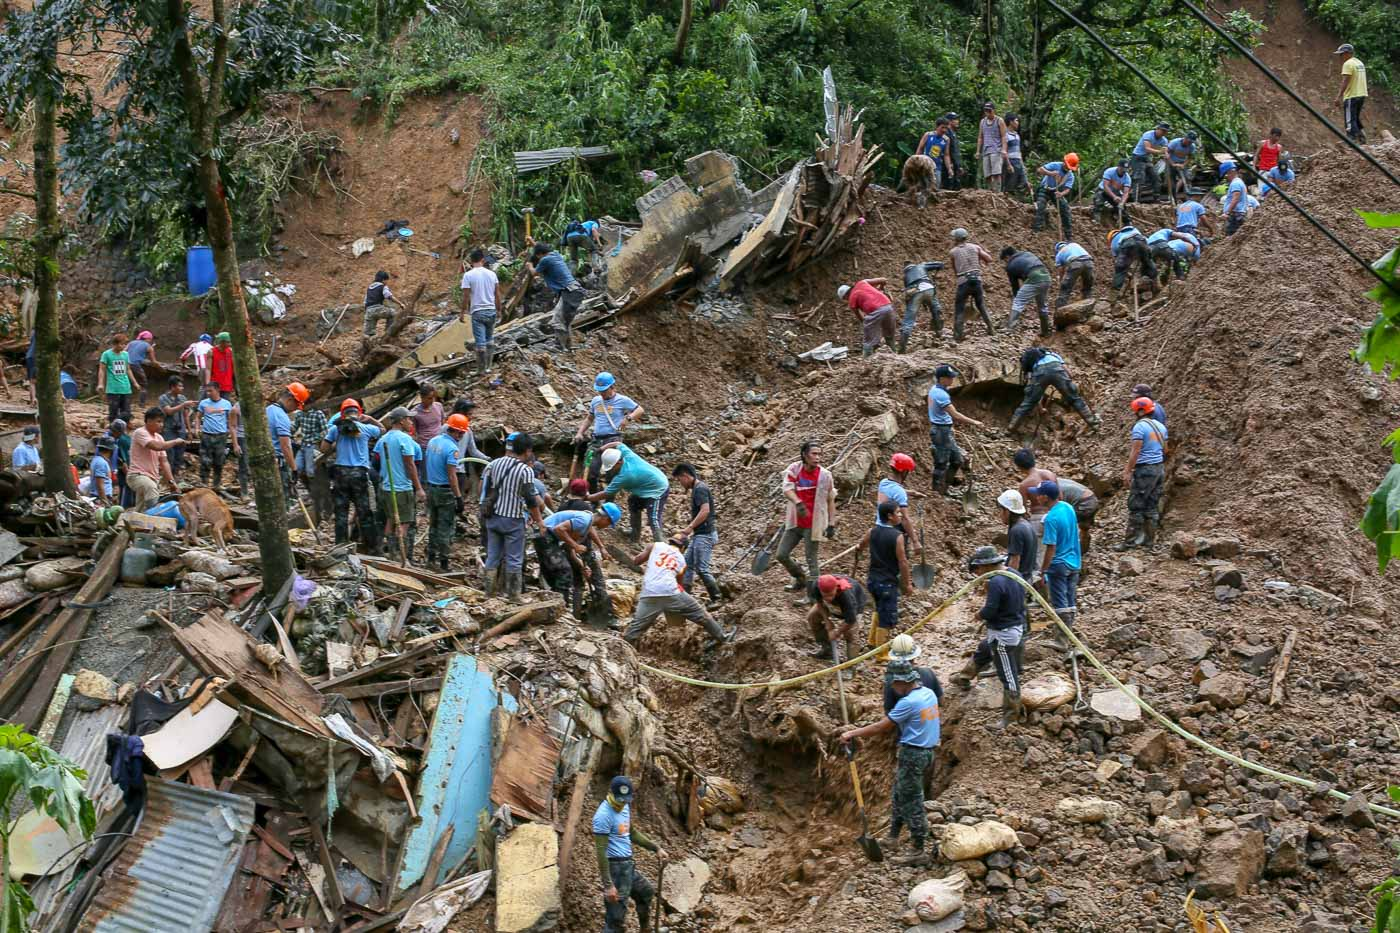 SEARCH. Policemen on September 17, 2018, lead the search and retrieval operations for missing miners in Barangay Ucab in Itogon, Benguet. Photo by Jire Carreon/Rappler